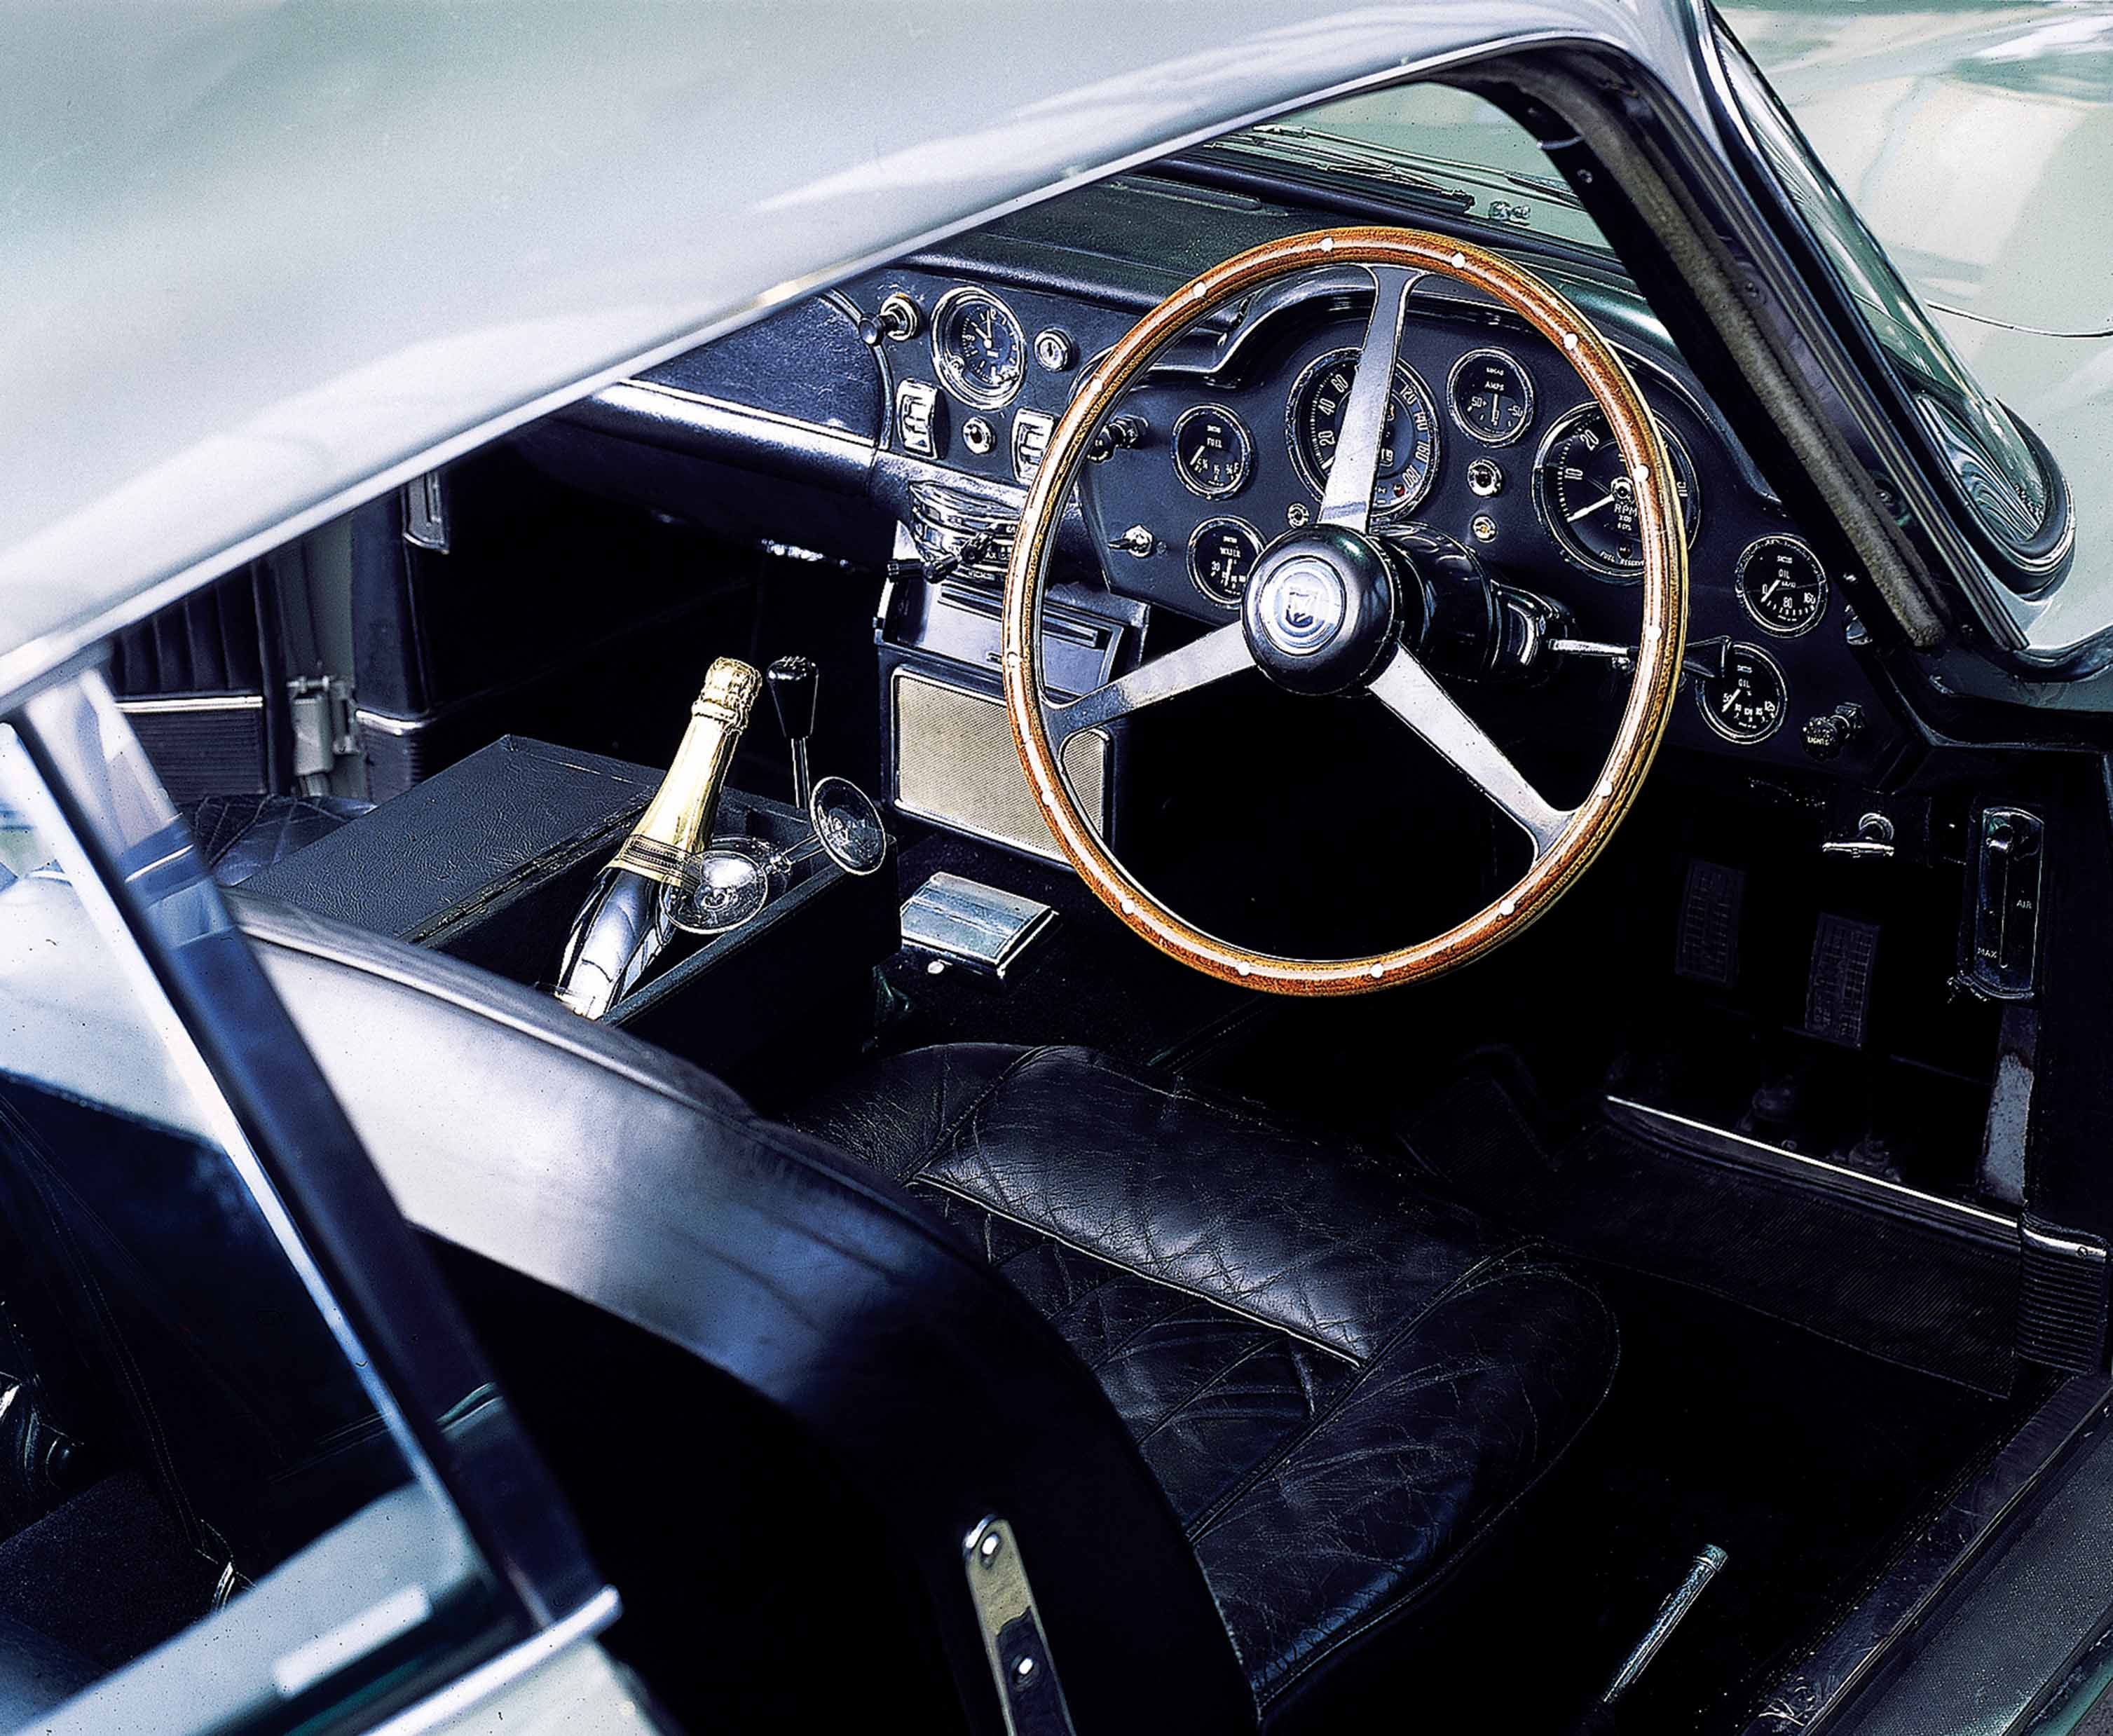 1965 Aston Martin DB5 Interior